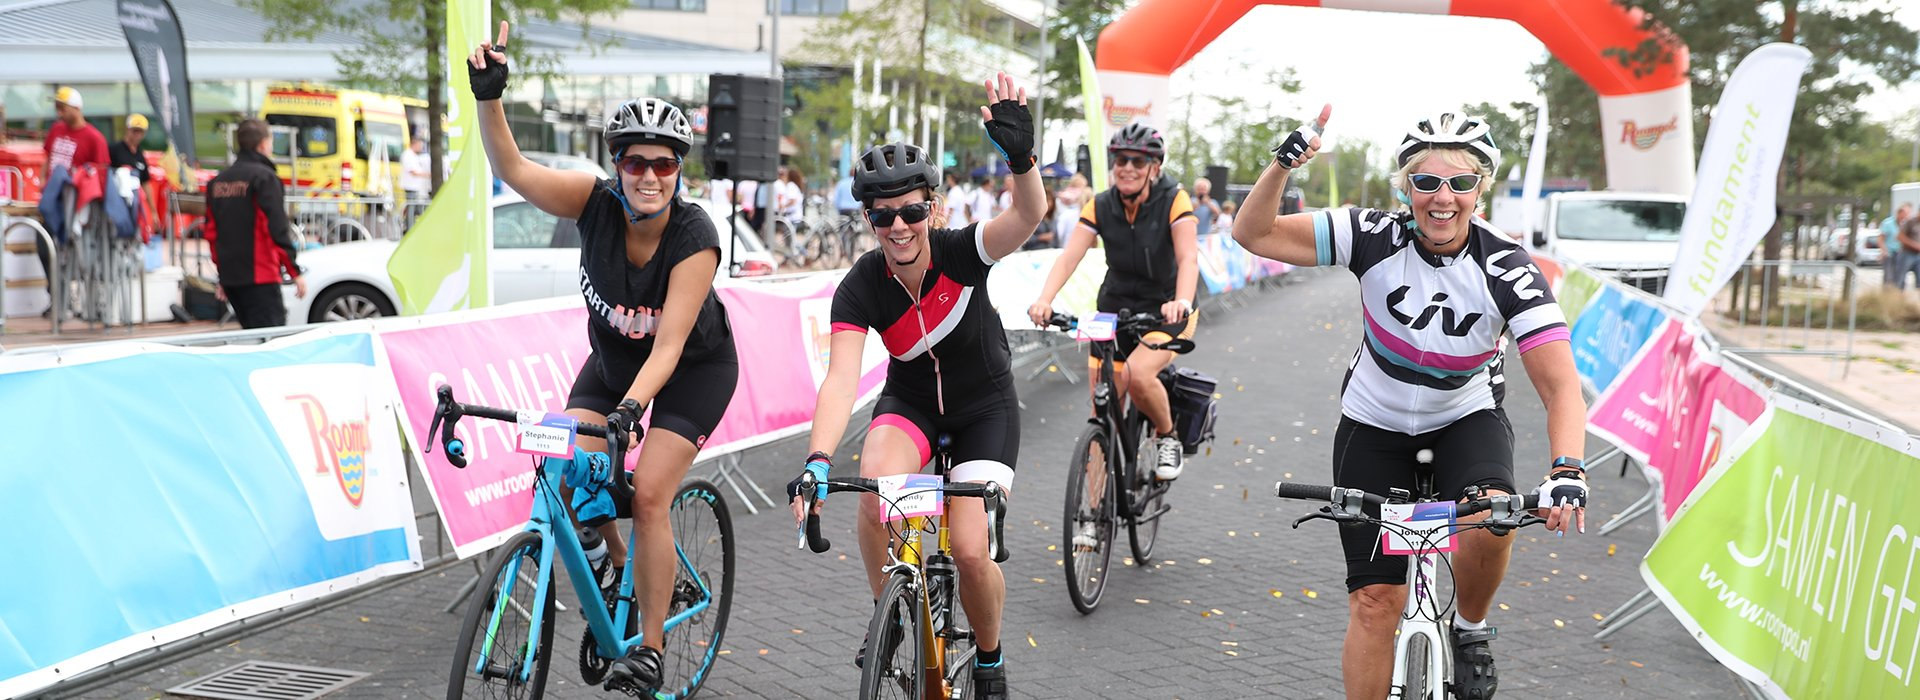 Iedereen over de finish bij Ladies Ride